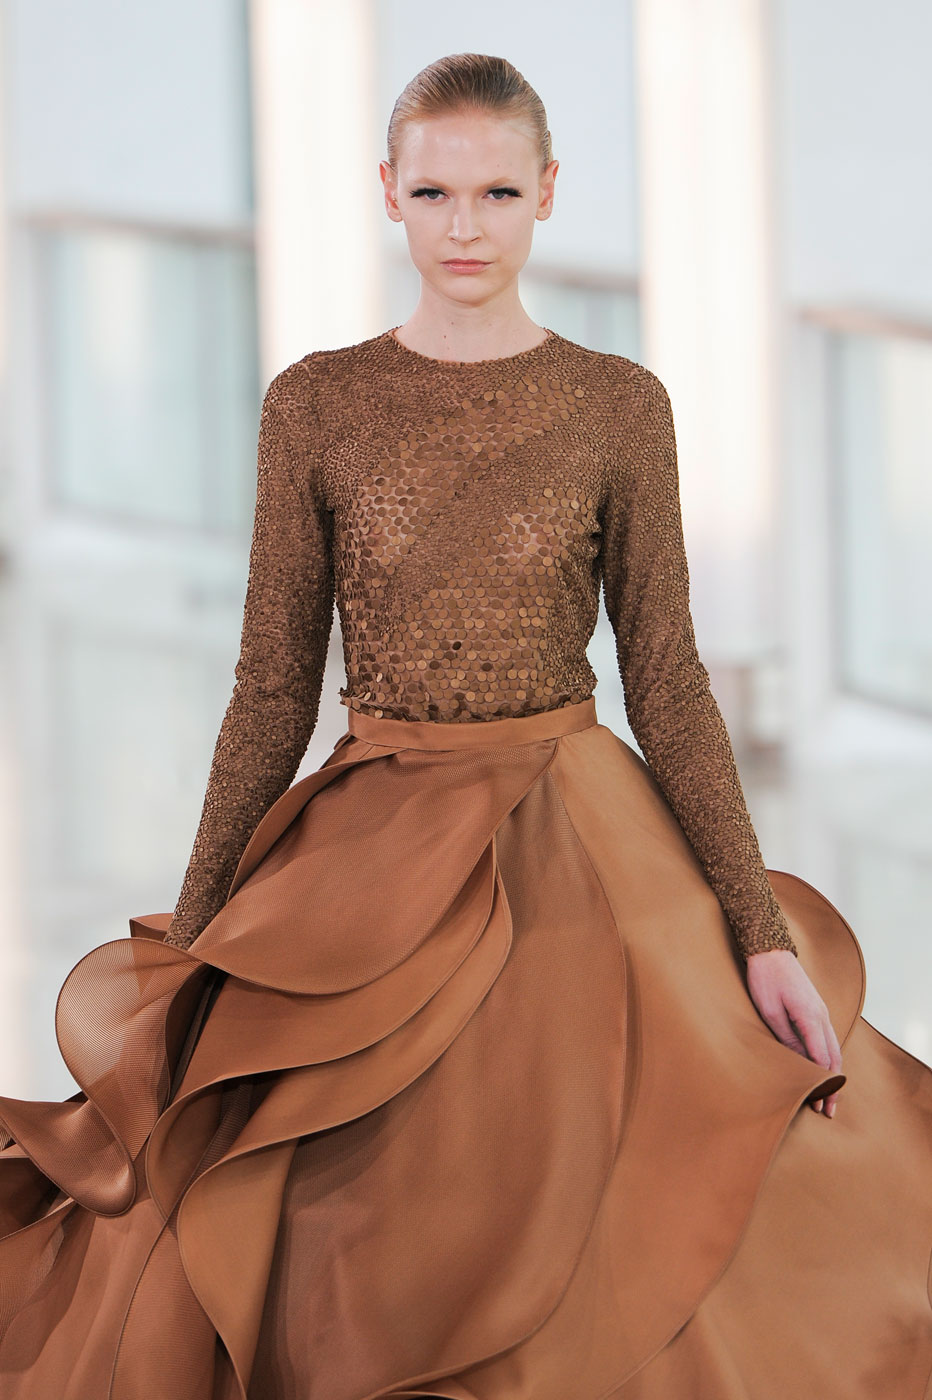 stephane-rolland-fashion-runway-show-haute-couture-paris-spring-2015-the-impression-58